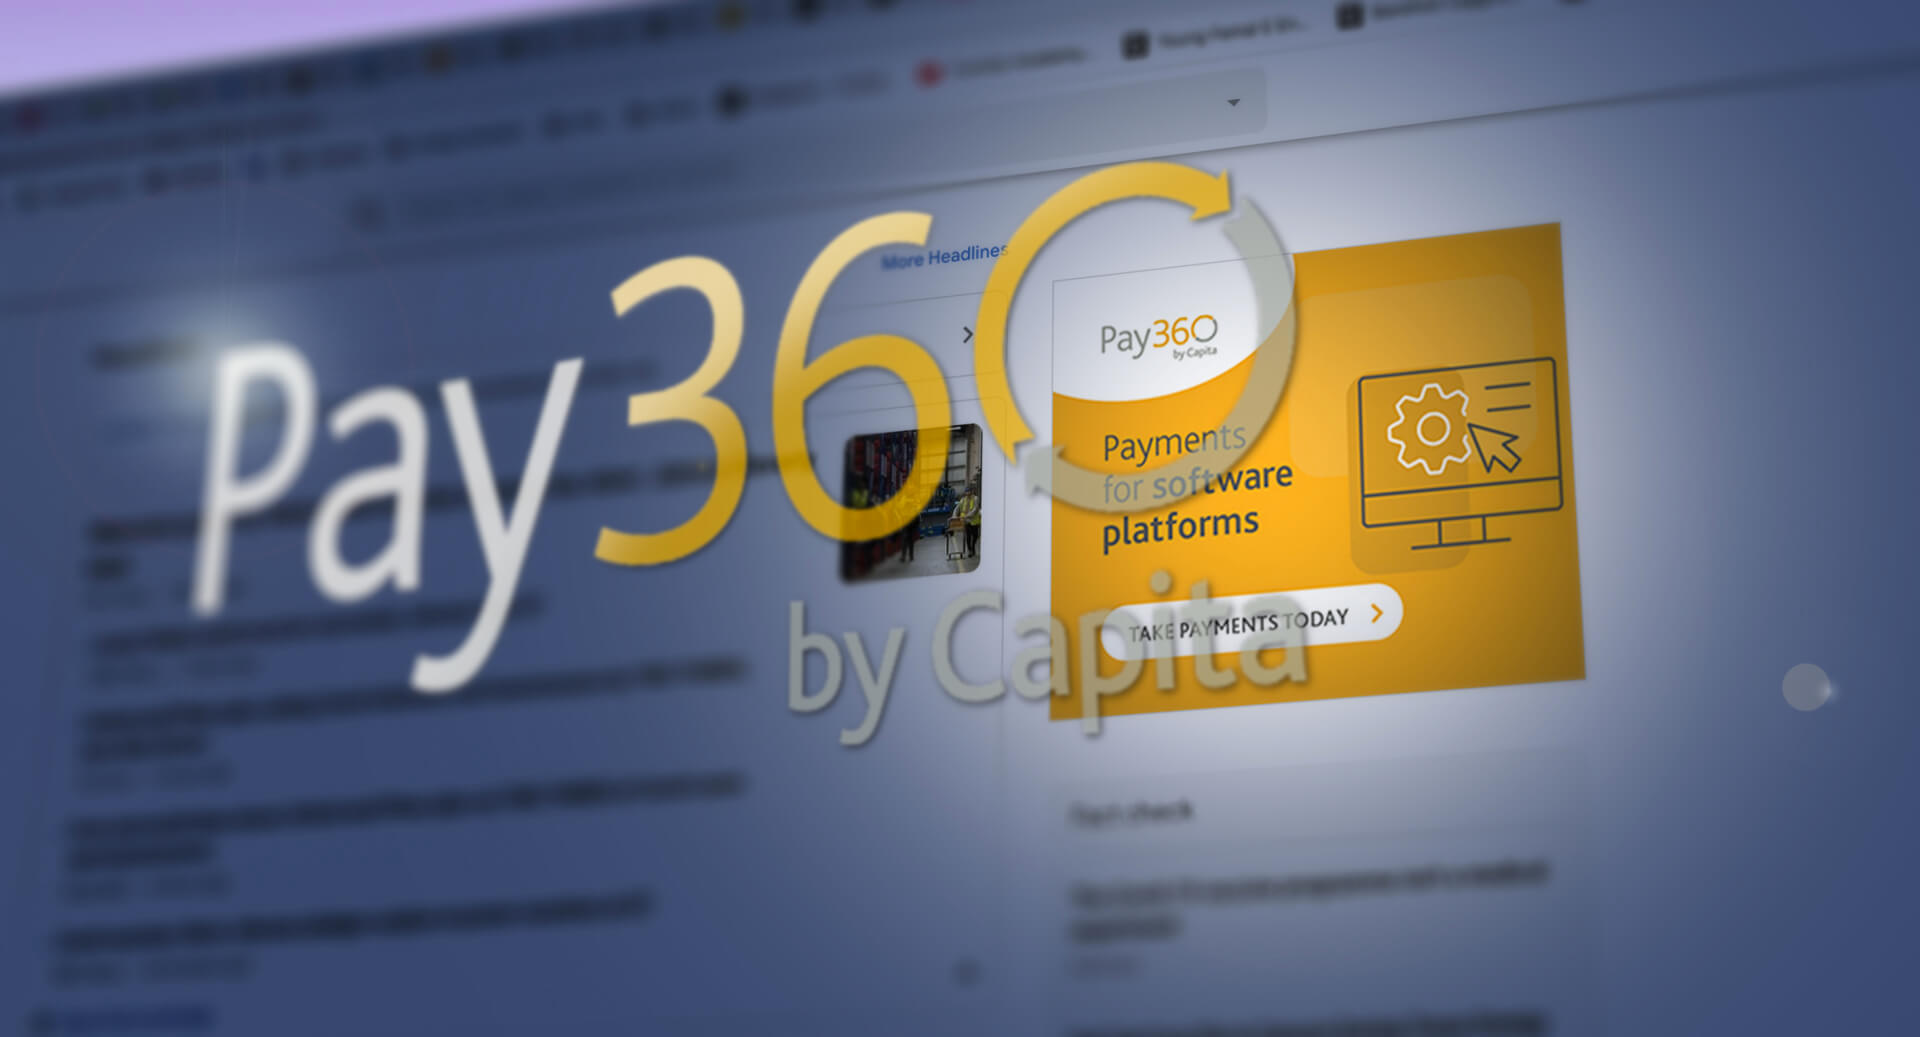 Pay360 logo with computer screen in background